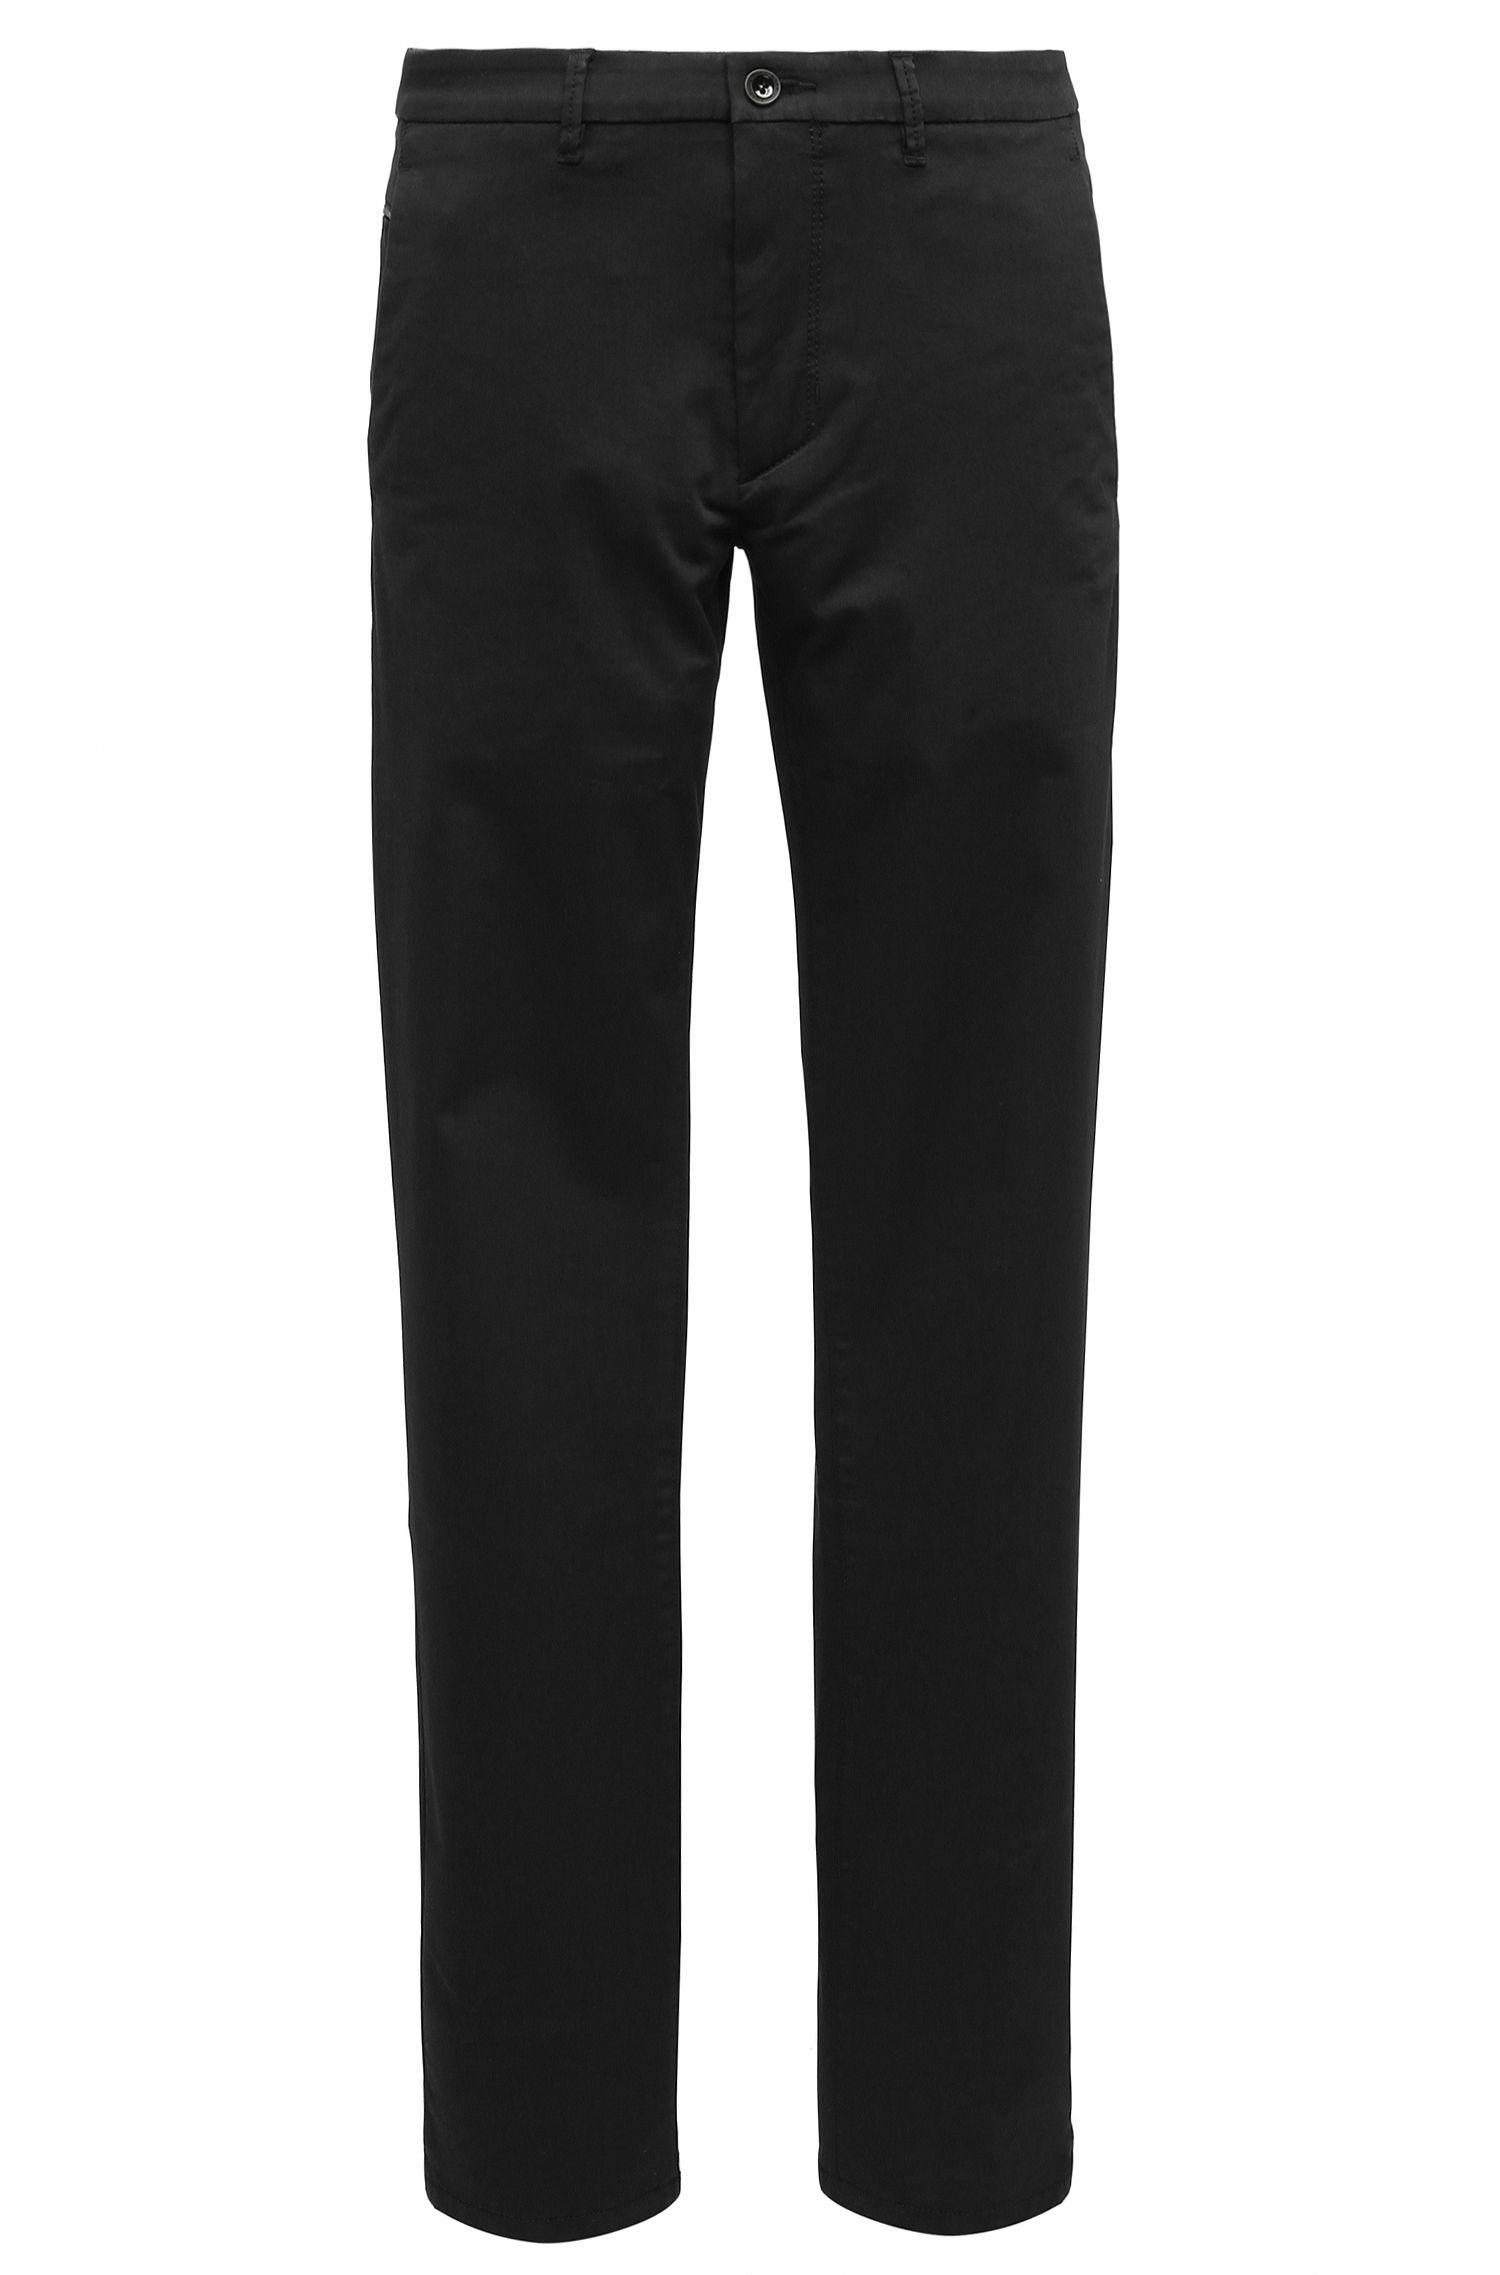 'Leeman-W' | Slim Fit, Stretch Cotton Blend Pants